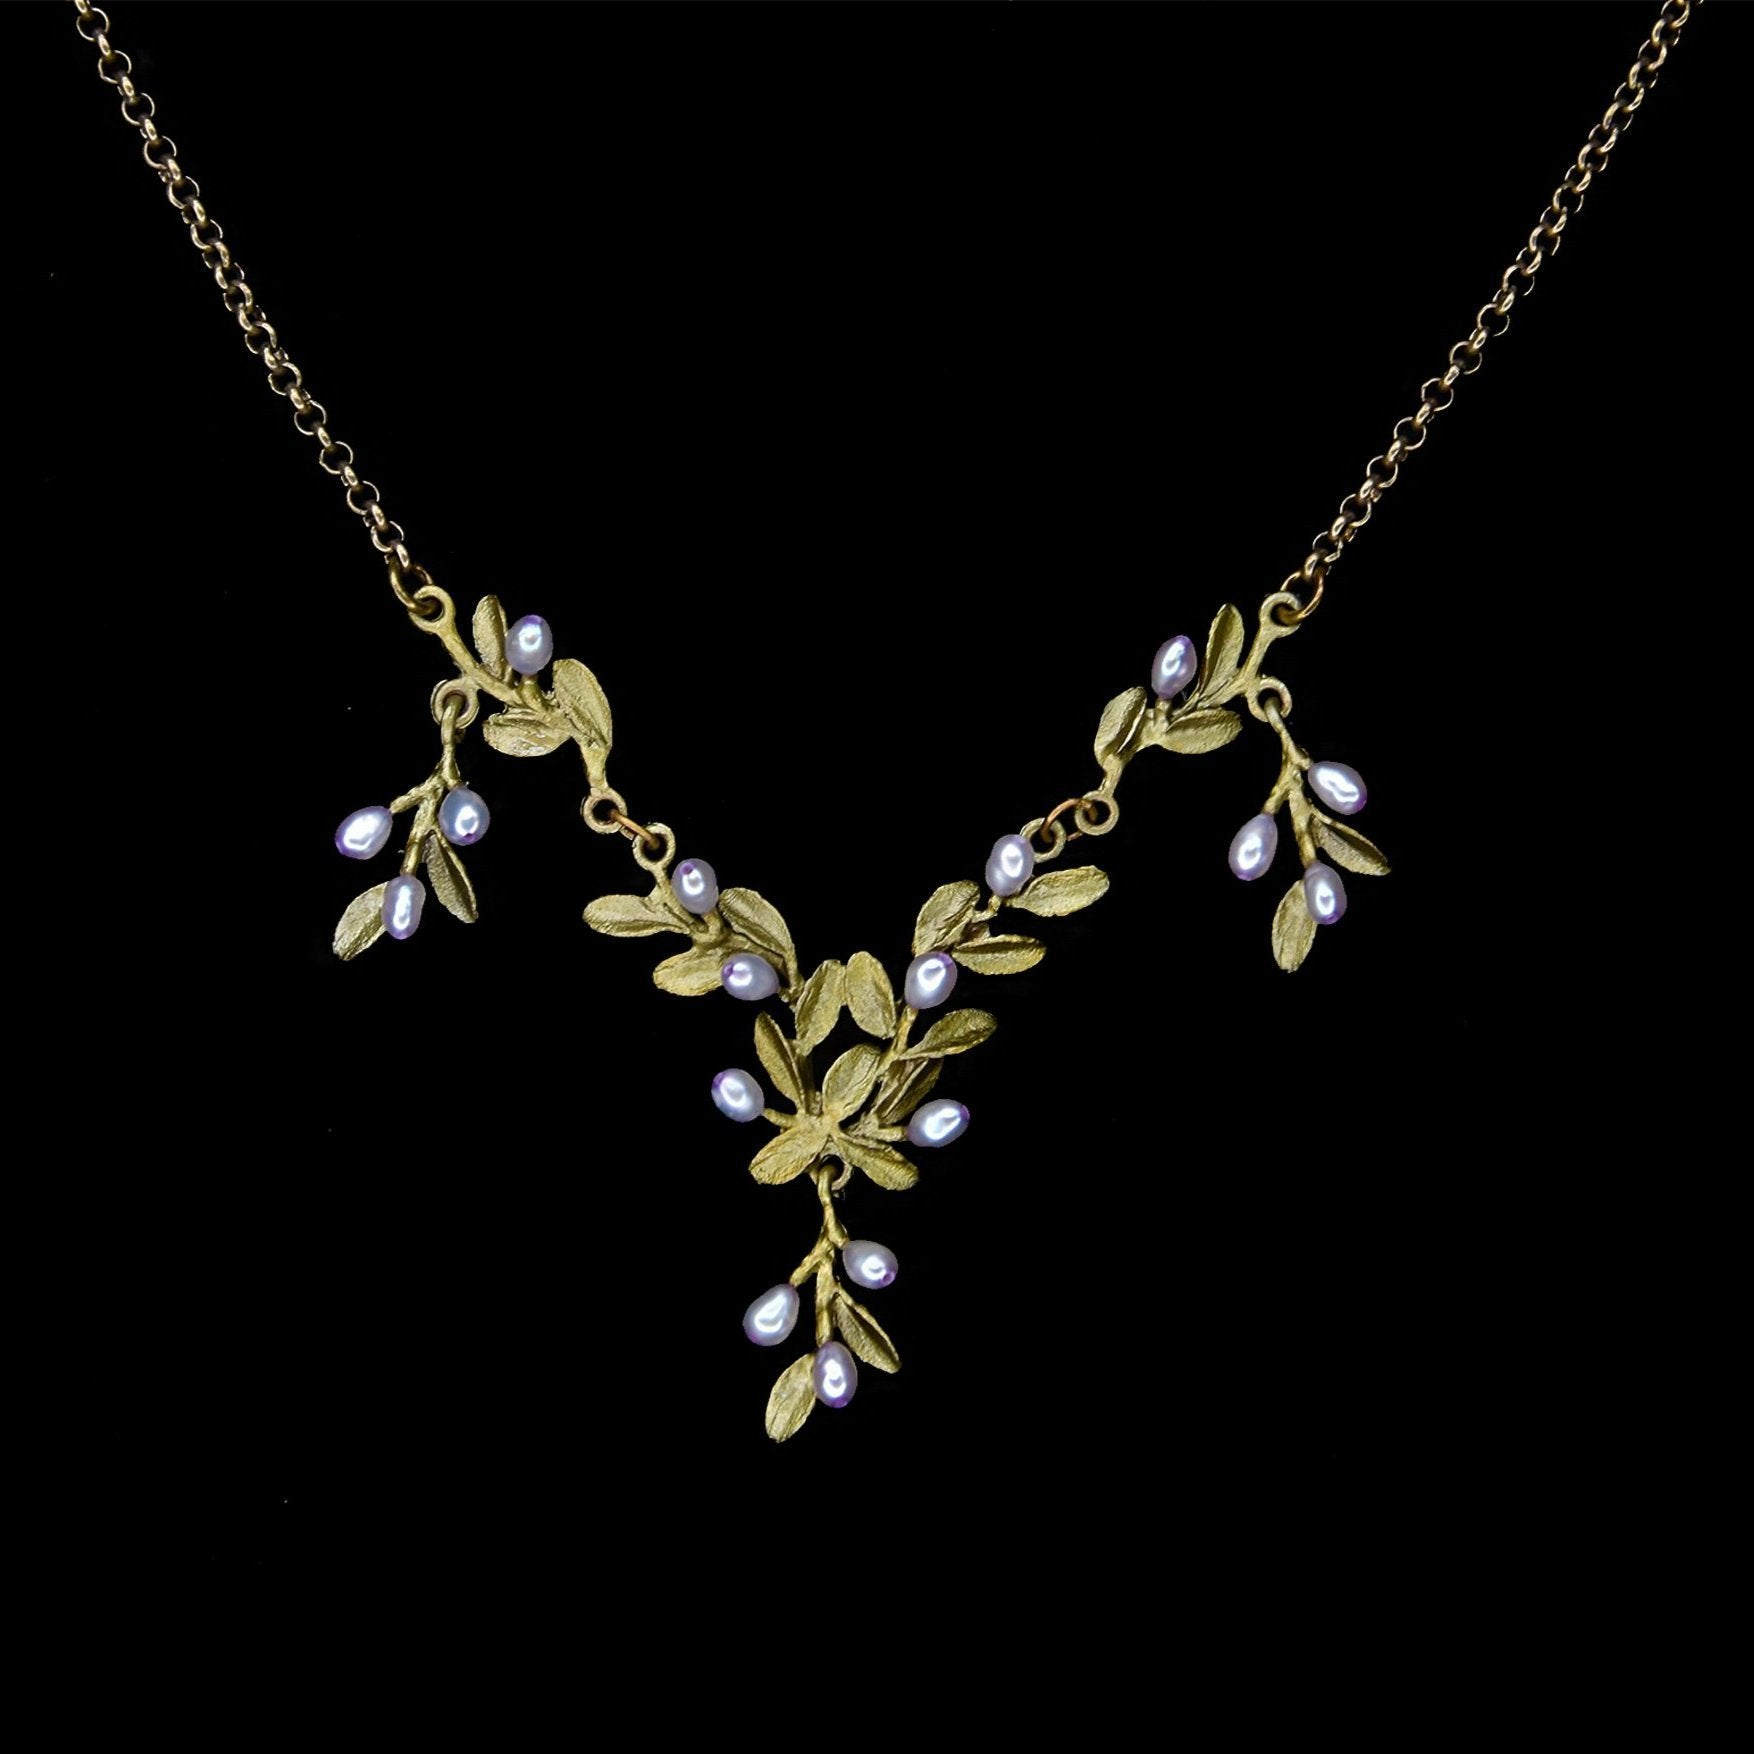 Flowering Thyme Necklace - Drop